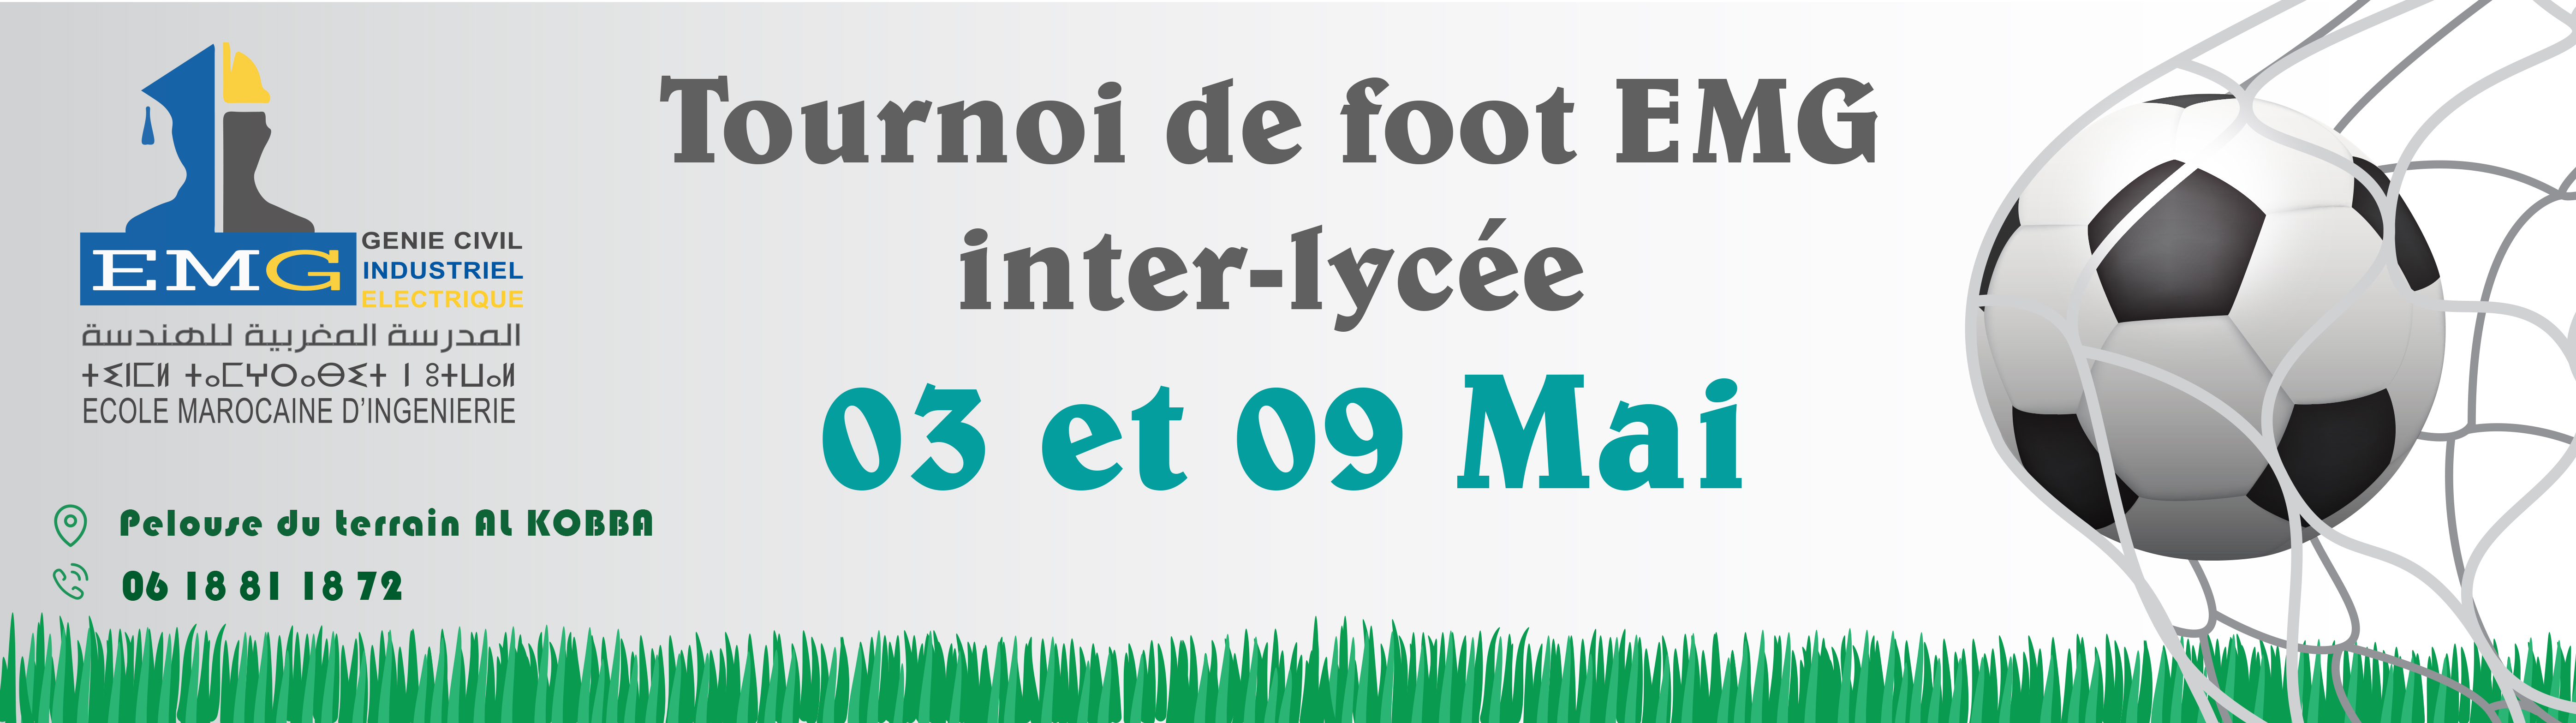 Tournoi inter_lycee